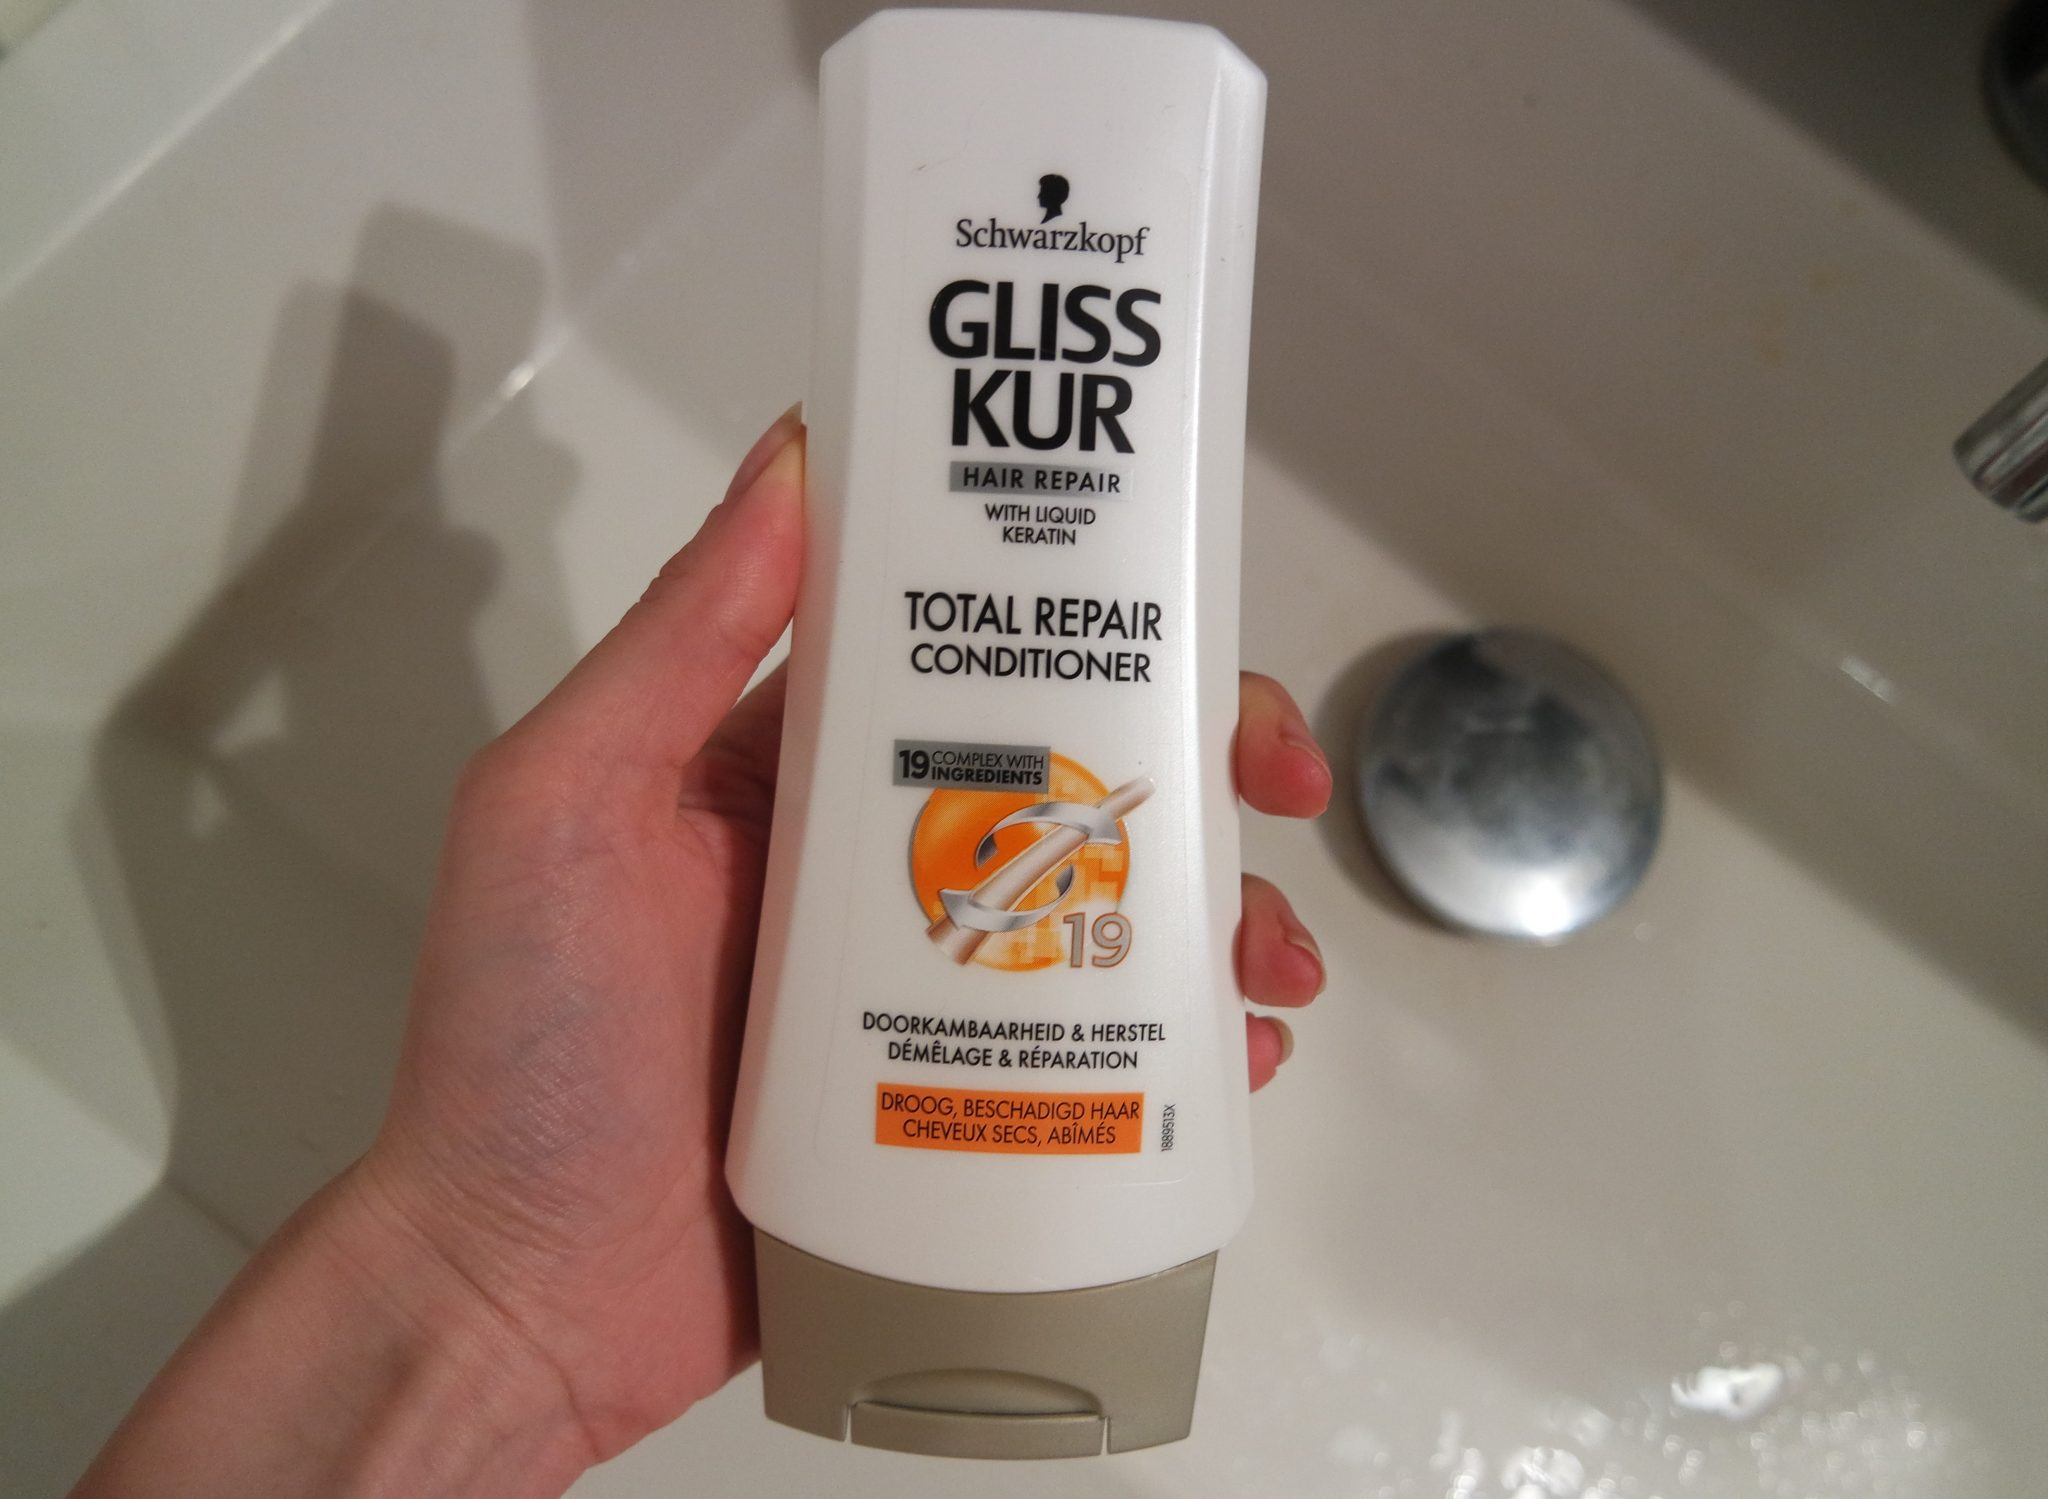 gliss kur conditioner total repair